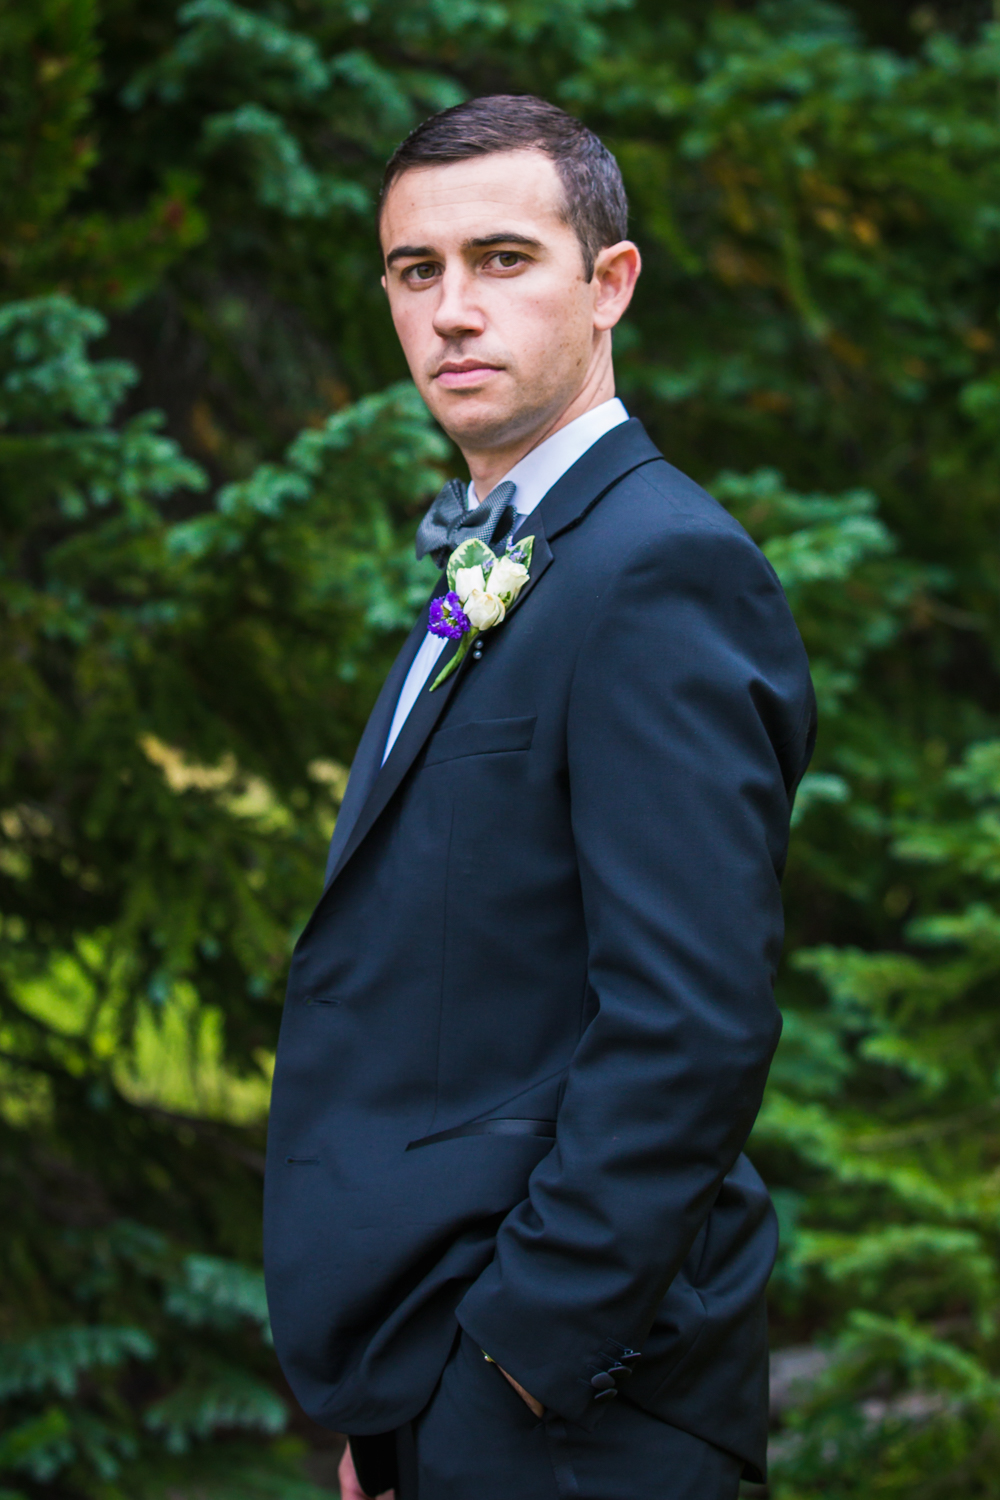 The Groom. Vail Colorado Wedding photographed by JMGant Photography.